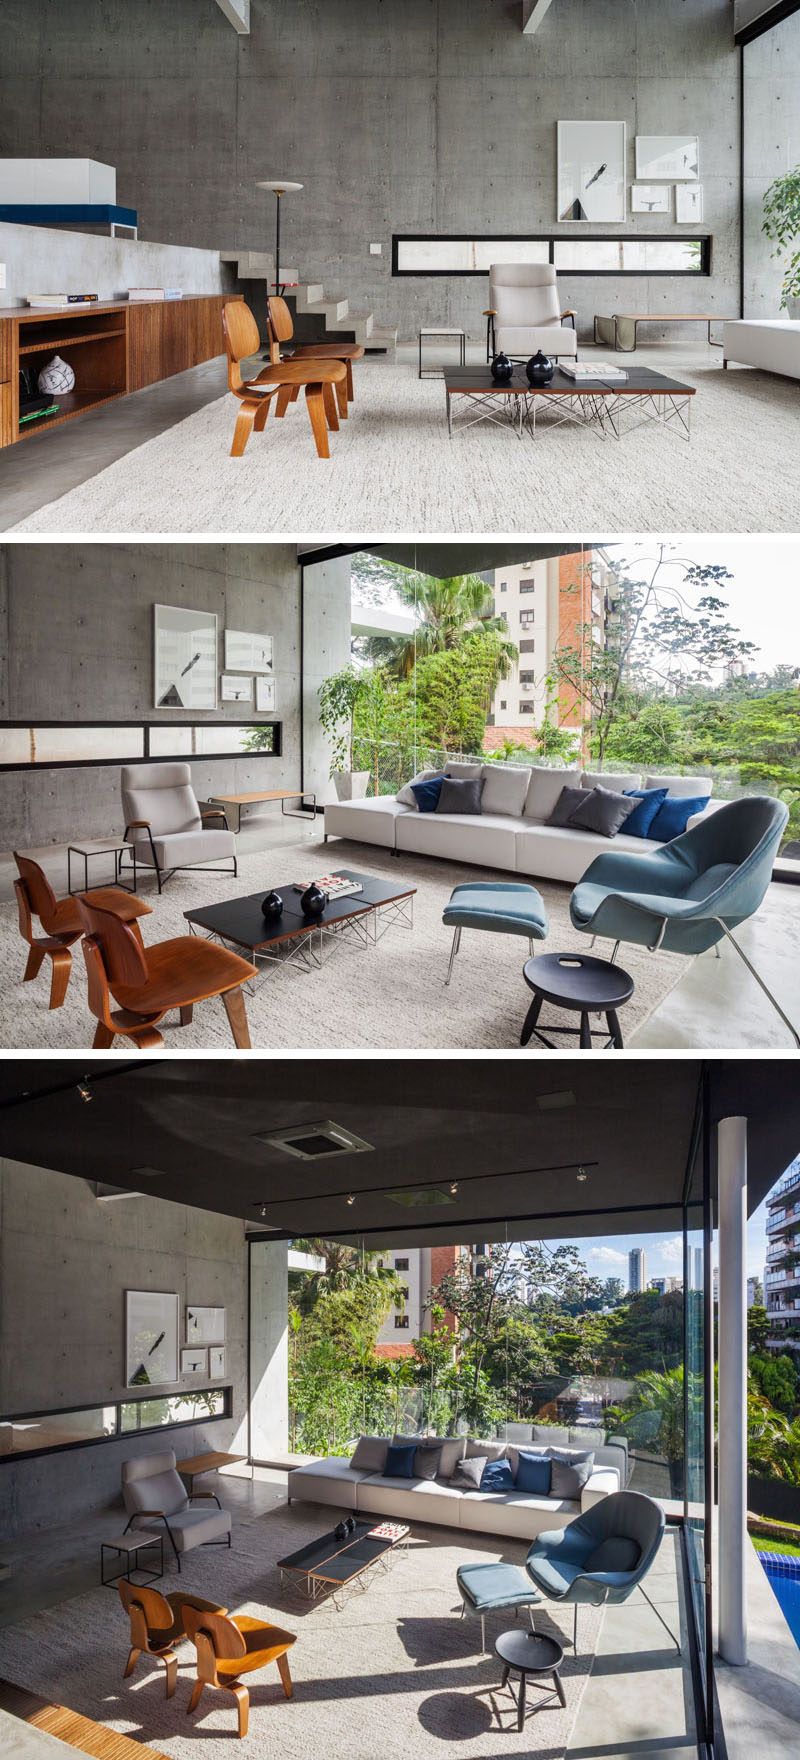 Stepping down to the living area of this modern house, you can see how the large windows flood the entire space with plenty of natural light, which helps to brighten the unfinished concrete walls, while a large rug makes the room feel warmer and assists in anchoring the furniture in the large room.